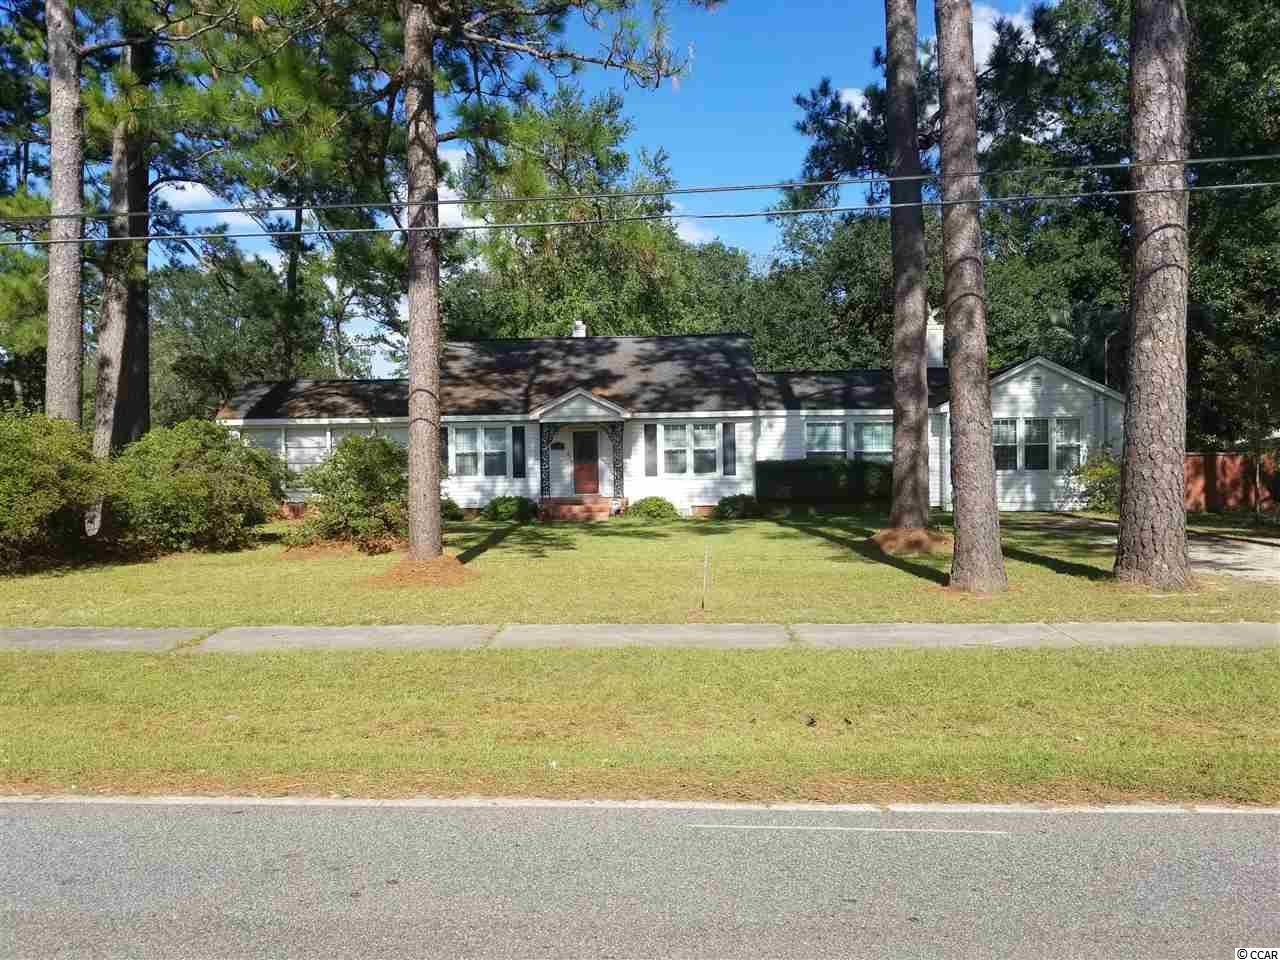 Spacious home with beautiful hardwood floors.  Carolina room with fireplace and tile floor.  Office with fireplace, hardwood floor and knotty pine paneling and ceiling.  Formal dining room and separate breakfast room.  Large deck overlooking beautiful side yard.